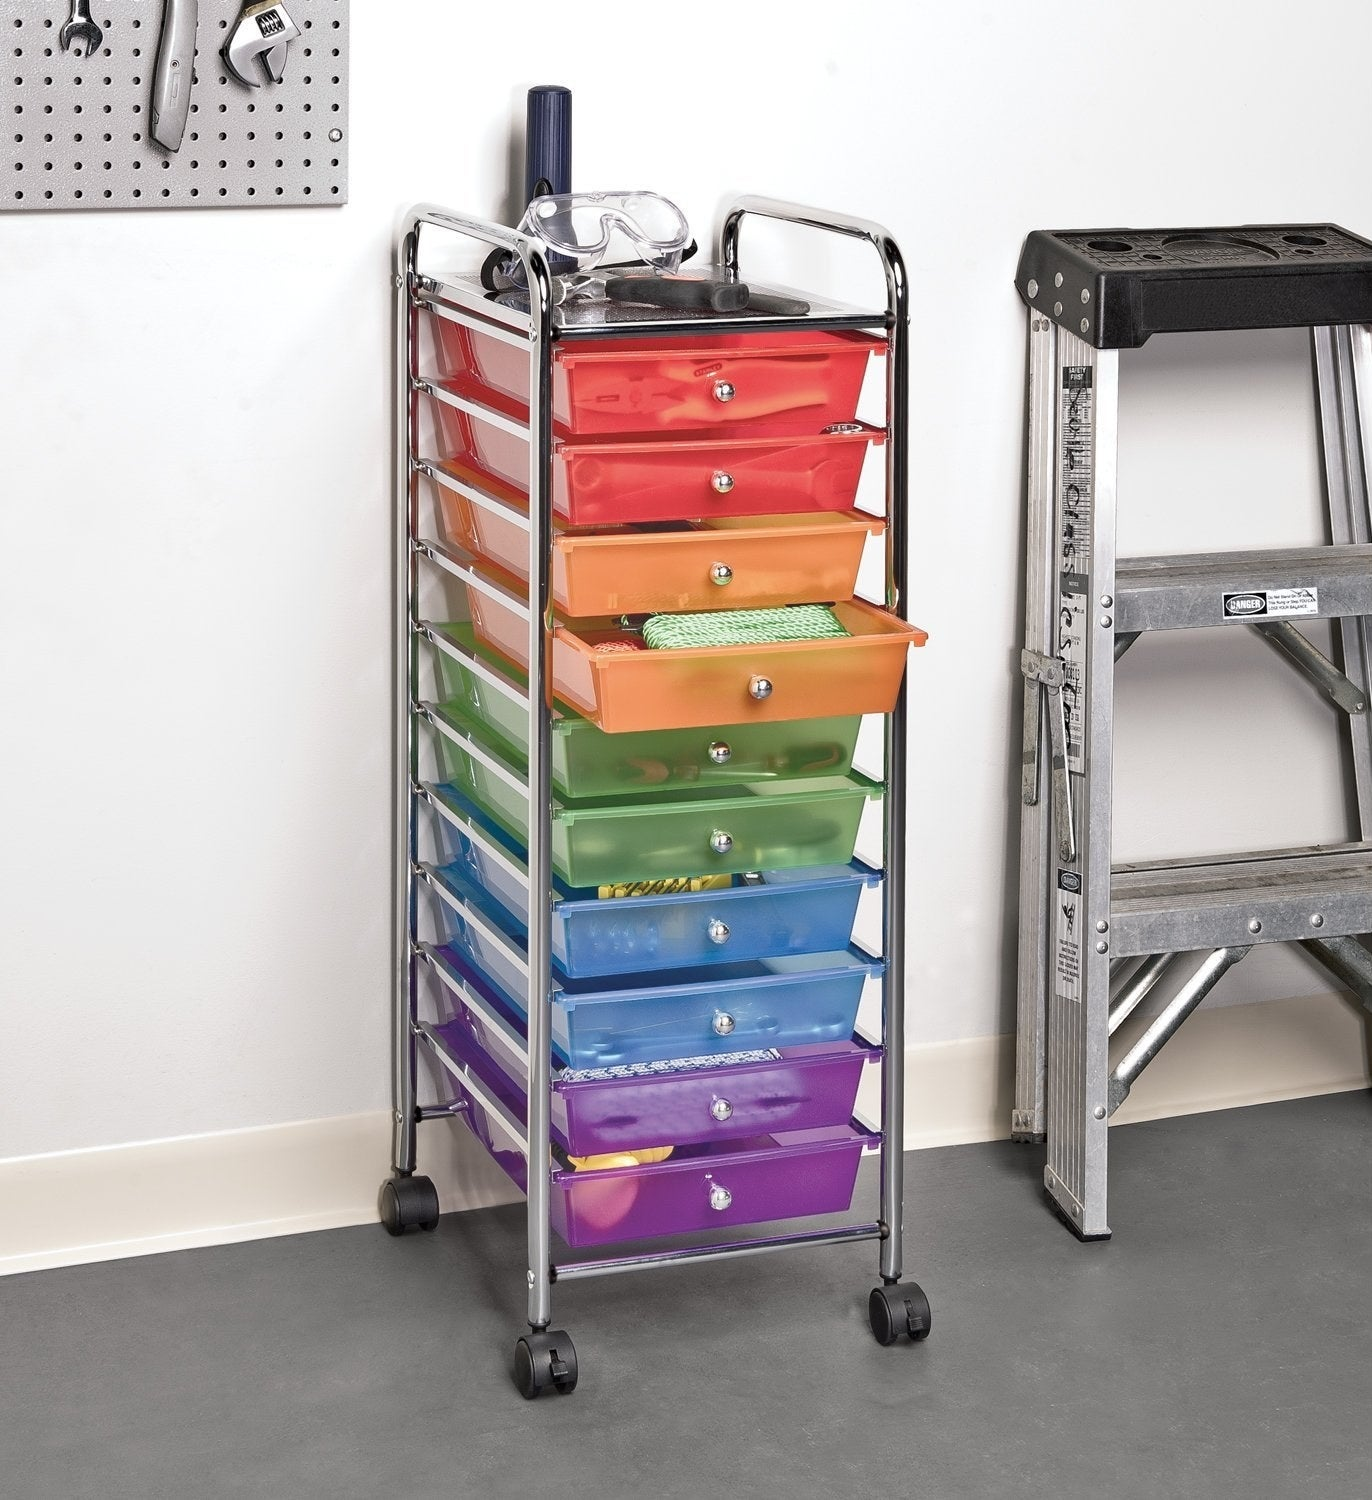 a ten drawer wheely shelf with two drawers in each color of the rainbow except yellow